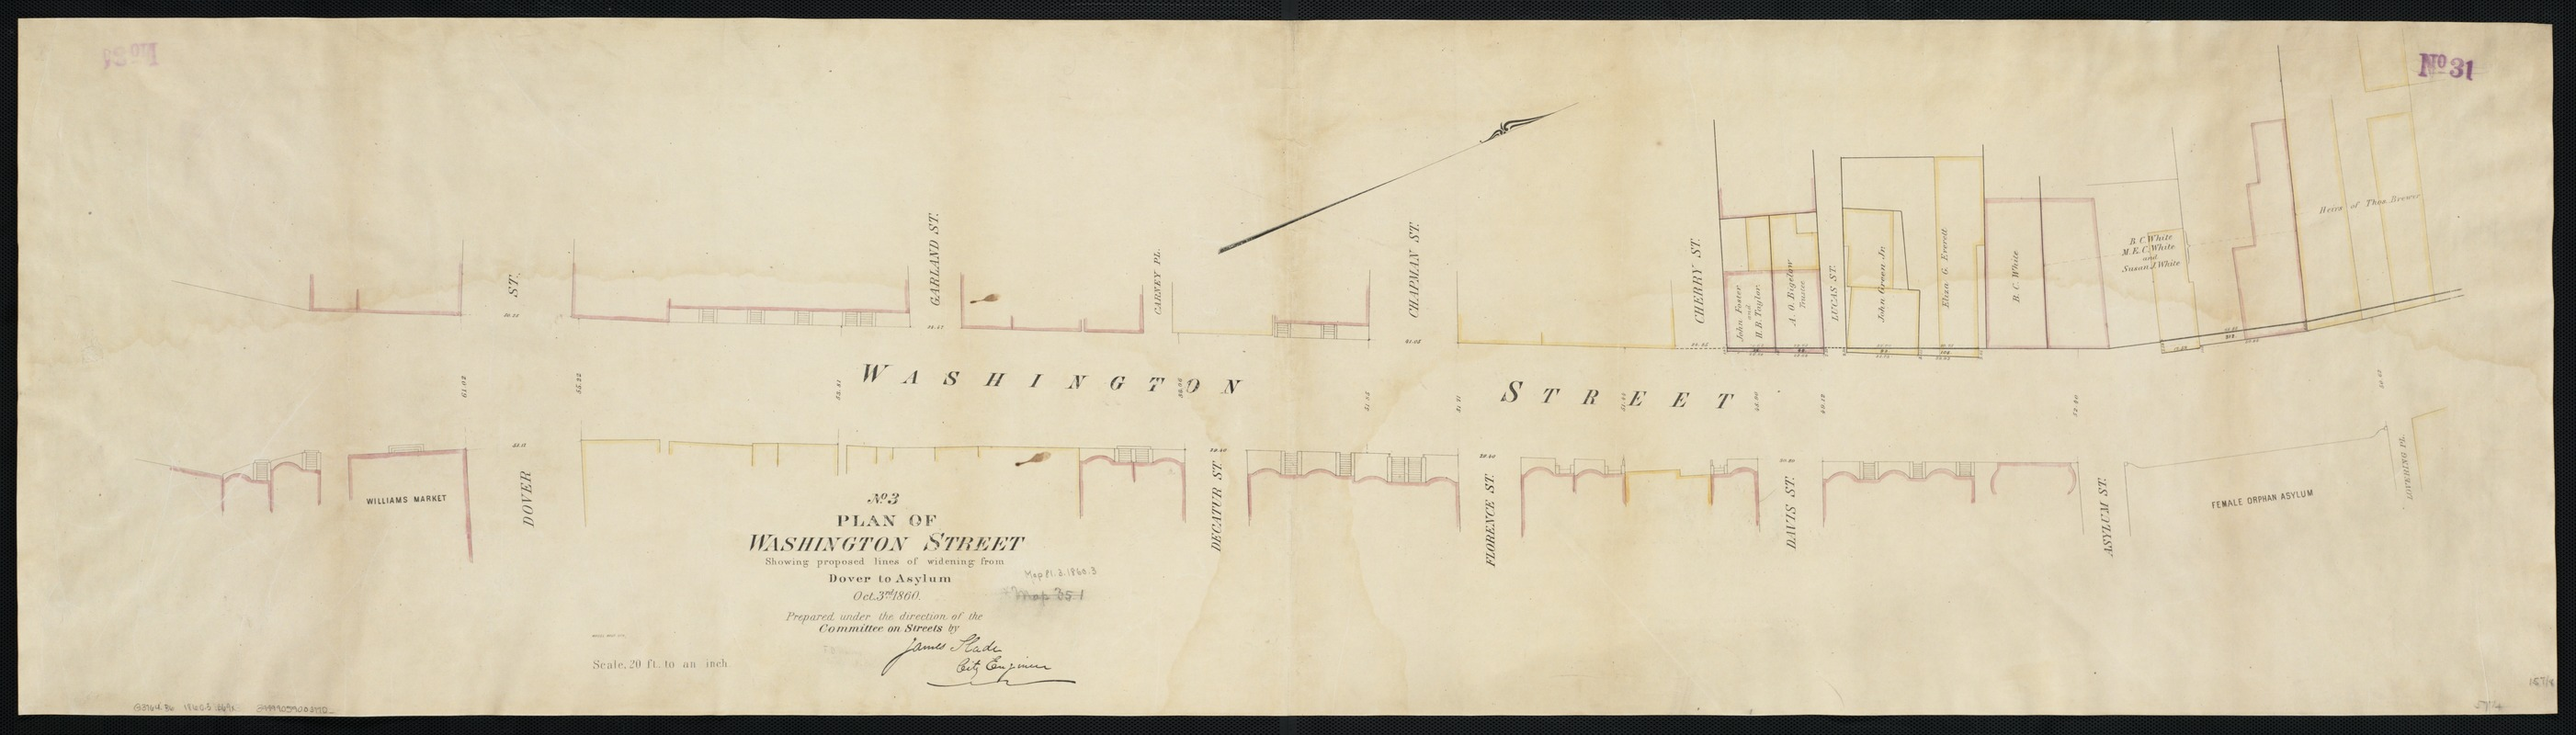 Plan of Washington Street showing proposed lines of widening from Dover to Asylum